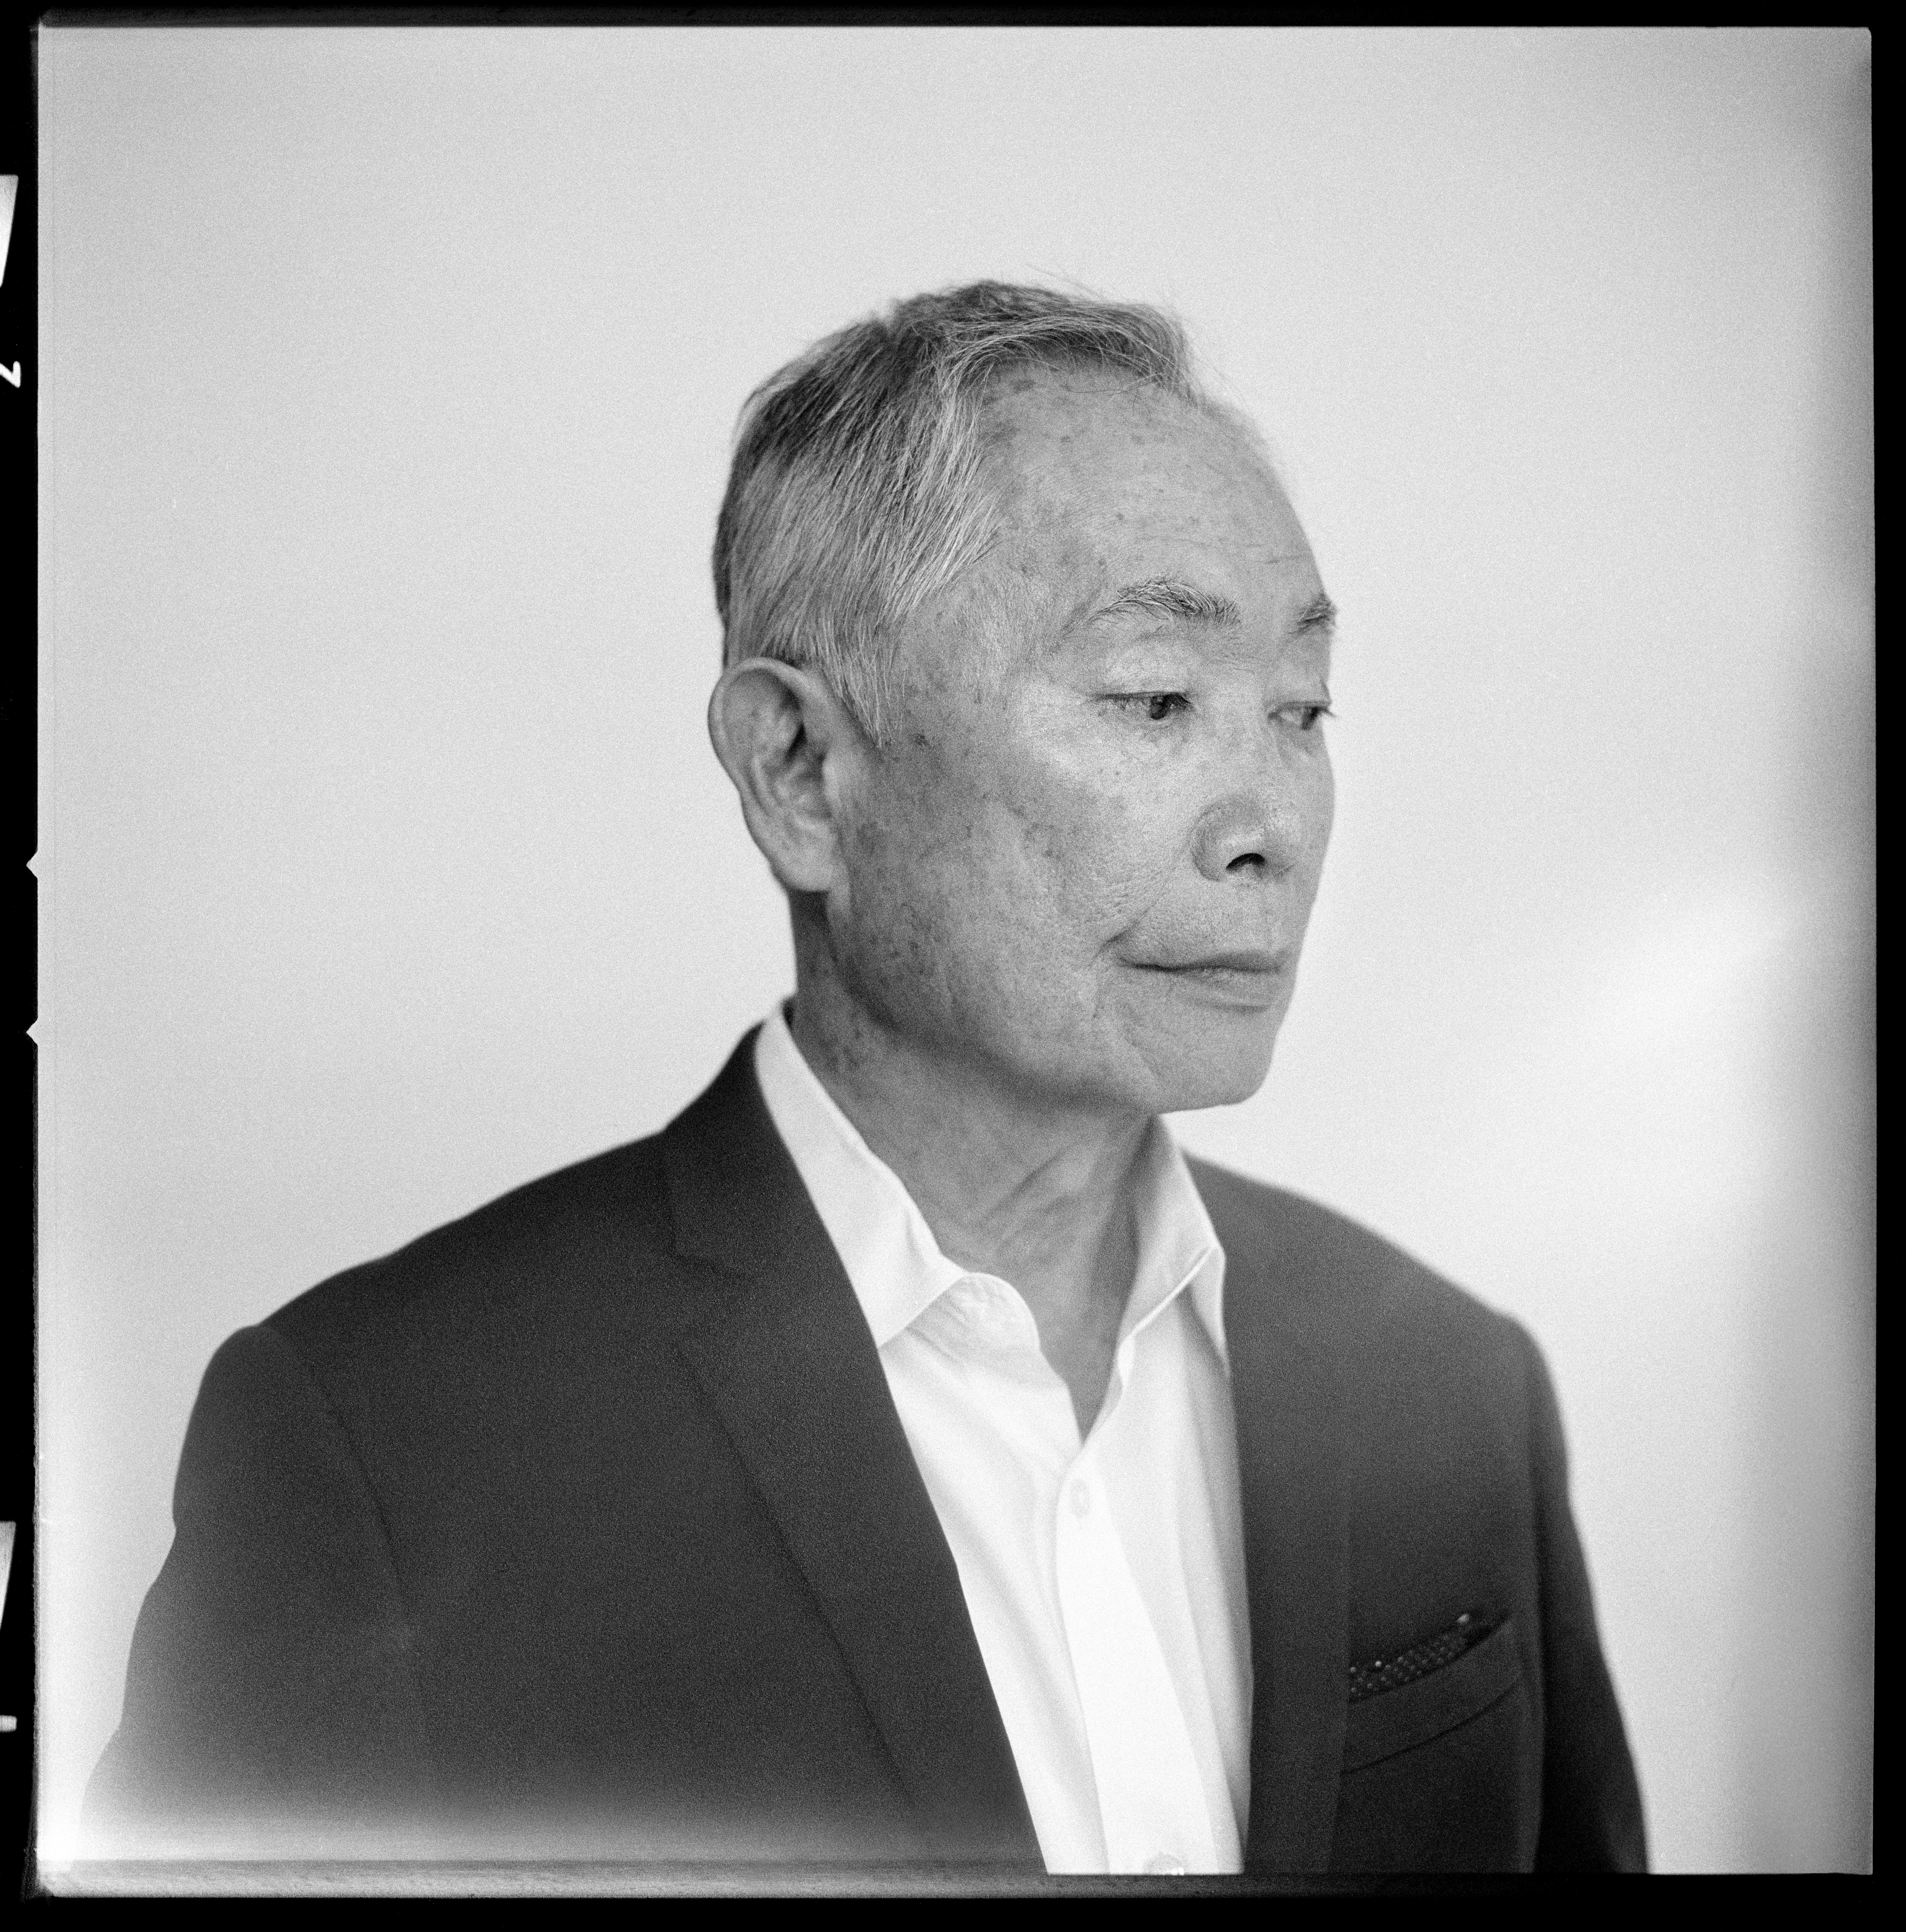 Actor George Takei, 82, spent ages 5 to almost 9 in Japanese American internment camps during World War II.